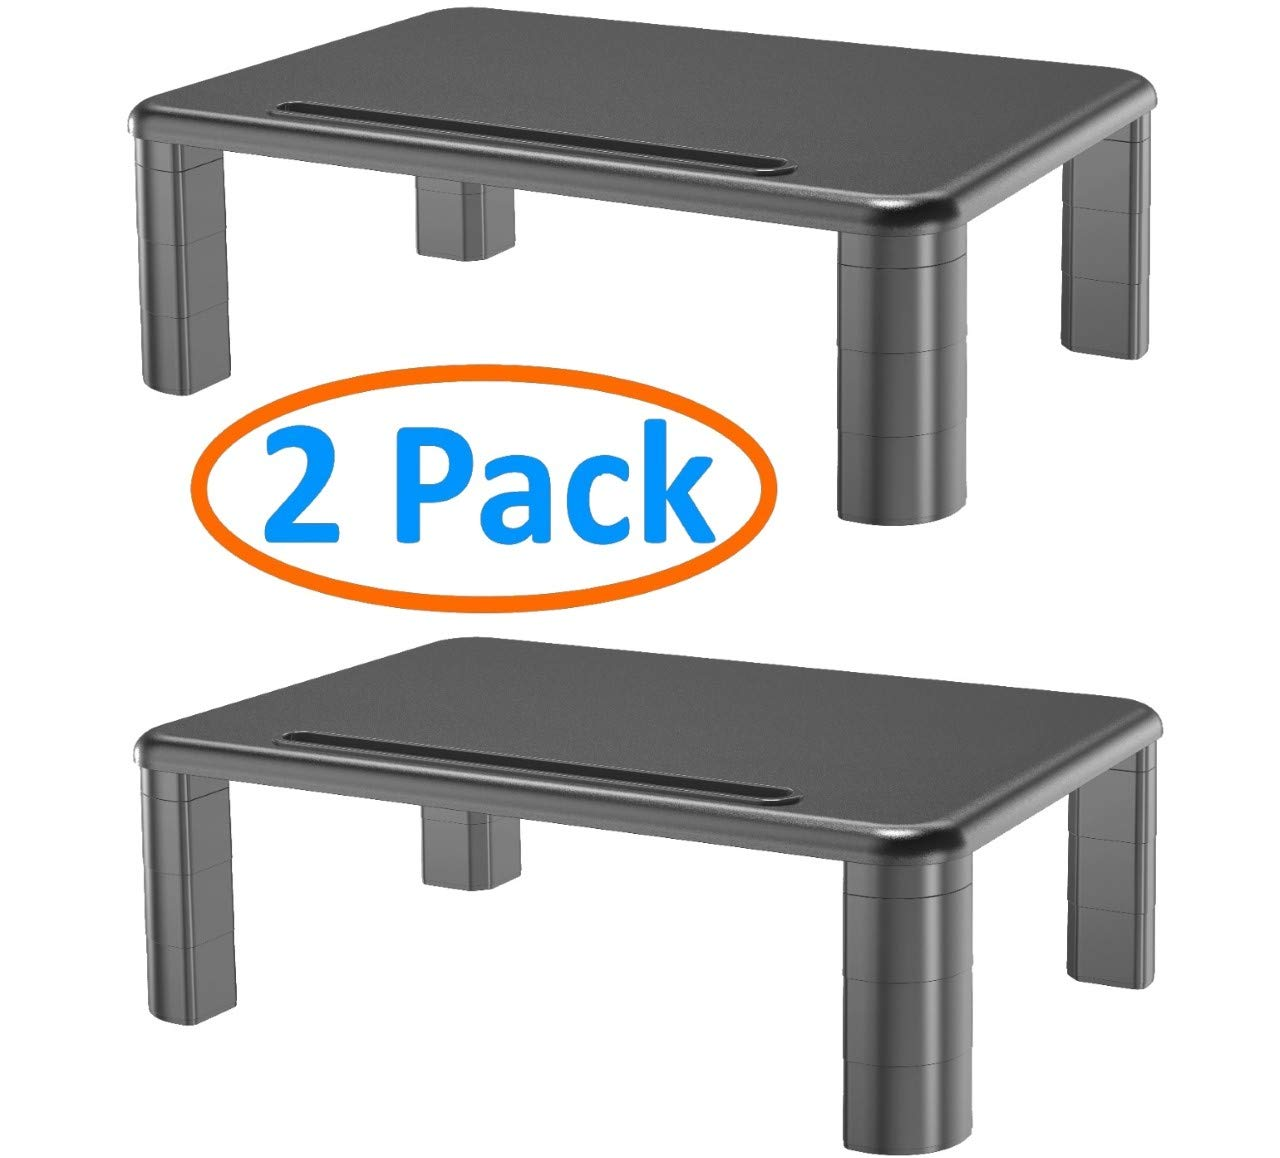 2-Pack Adjustable Monitor Stand with Storage Organization. Sturdy, Durable, No-Vibration Support. Convenient Slots for Tablet or Phone & Cables. Perfect Riser for Laptop, Printer. Stylish Black